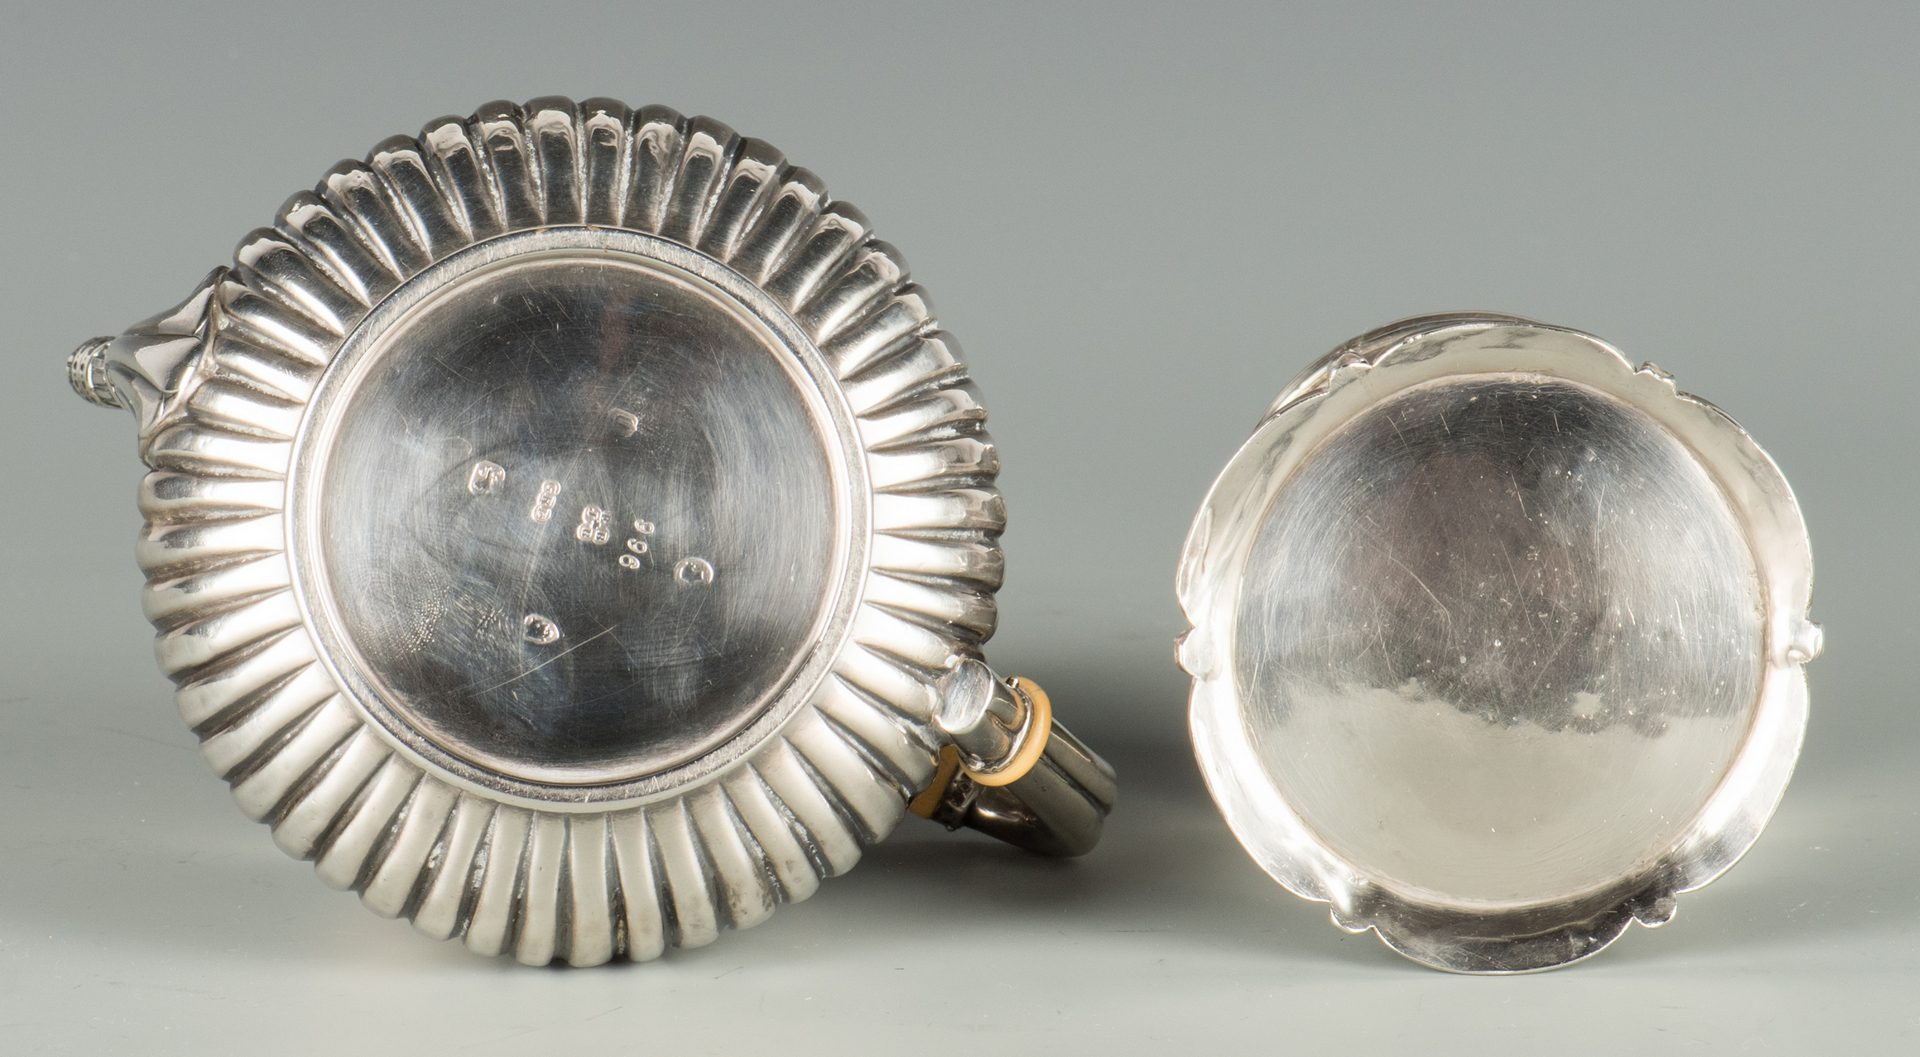 Lot 362: 6 Pcs. English Victorian Sterling Silver